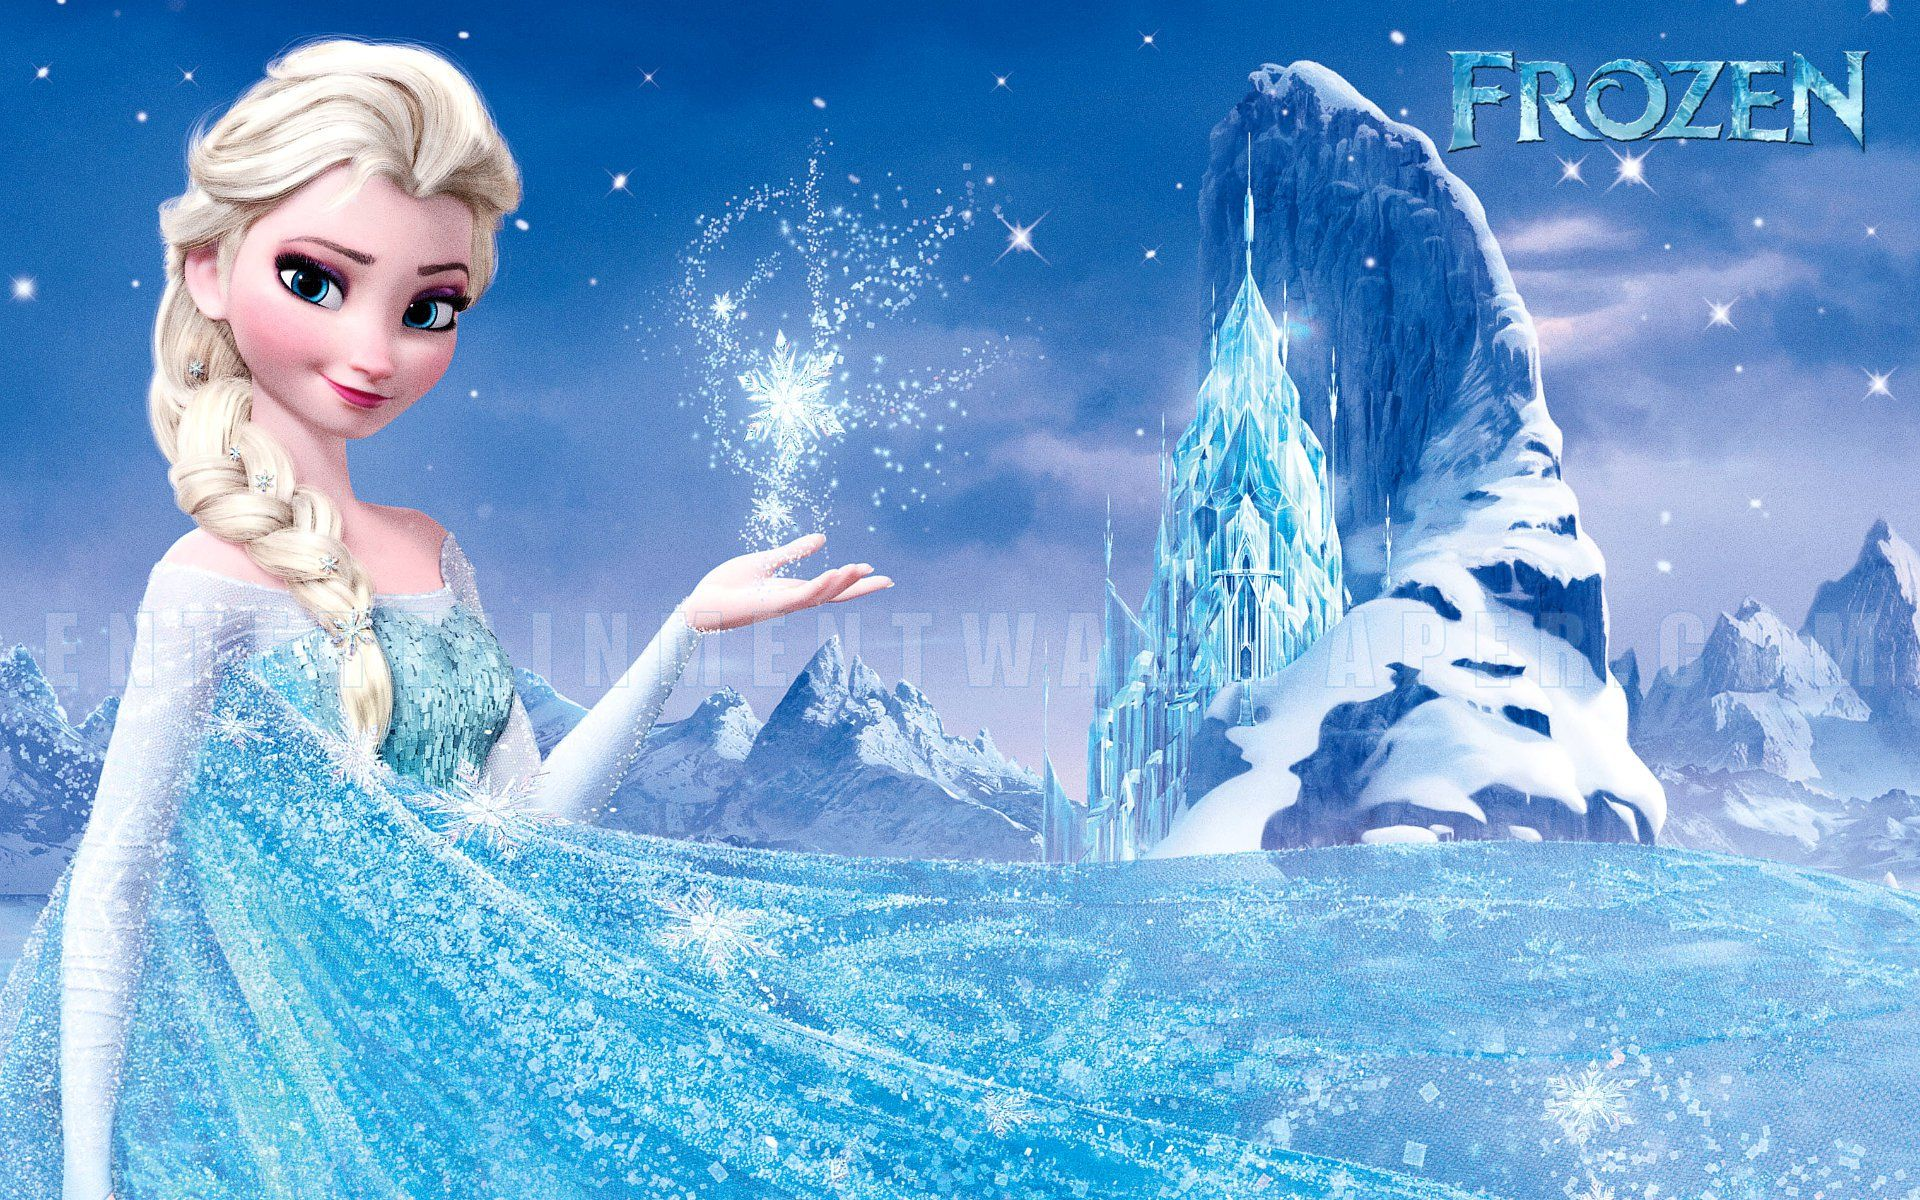 Frozen Wallpaper – What You Should Know Before Using It